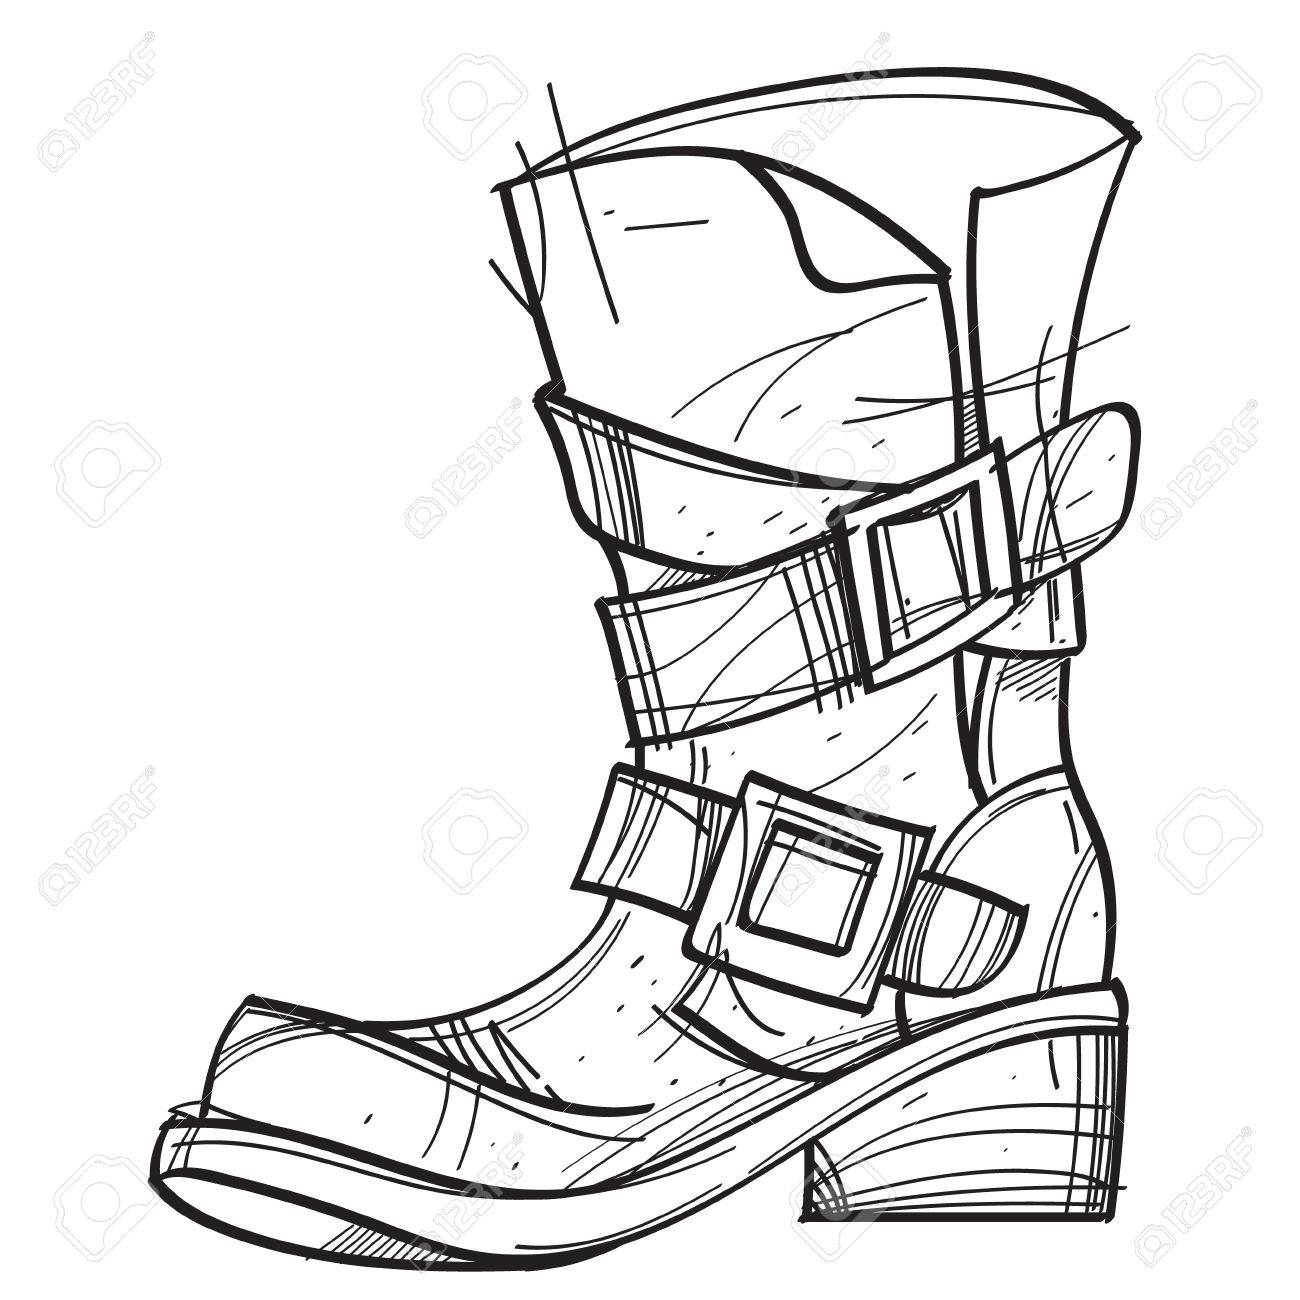 1300x1300 Old Men's Boots. Cartoon Drawing For Gaming Mobile Applications